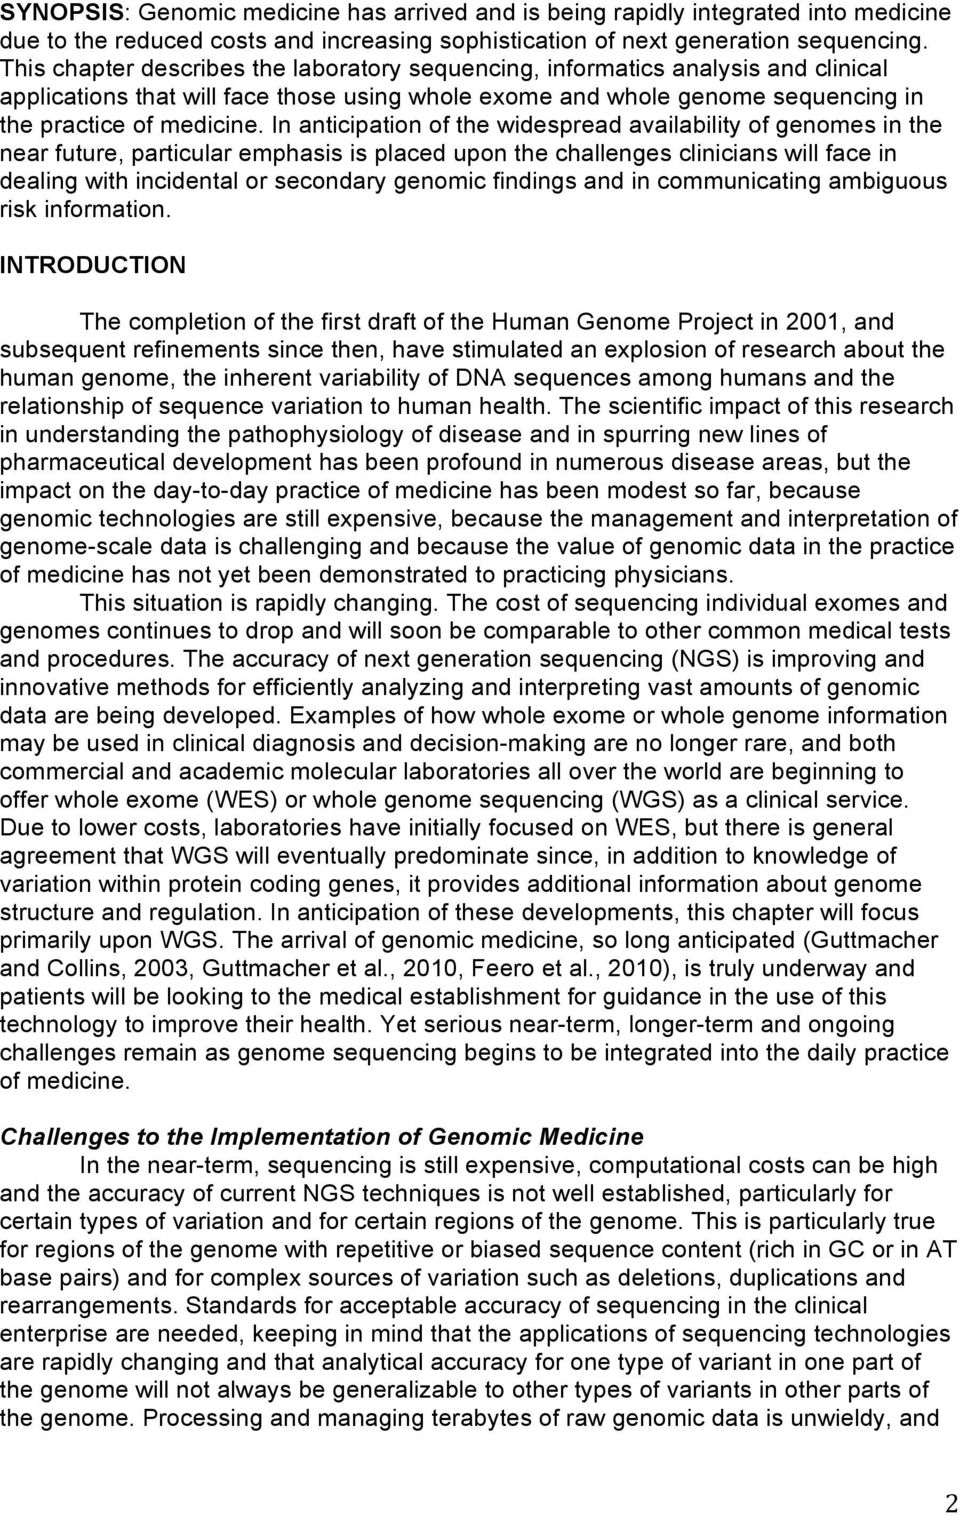 In anticipation of the widespread availability of genomes in the near future, particular emphasis is placed upon the challenges clinicians will face in dealing with incidental or secondary genomic